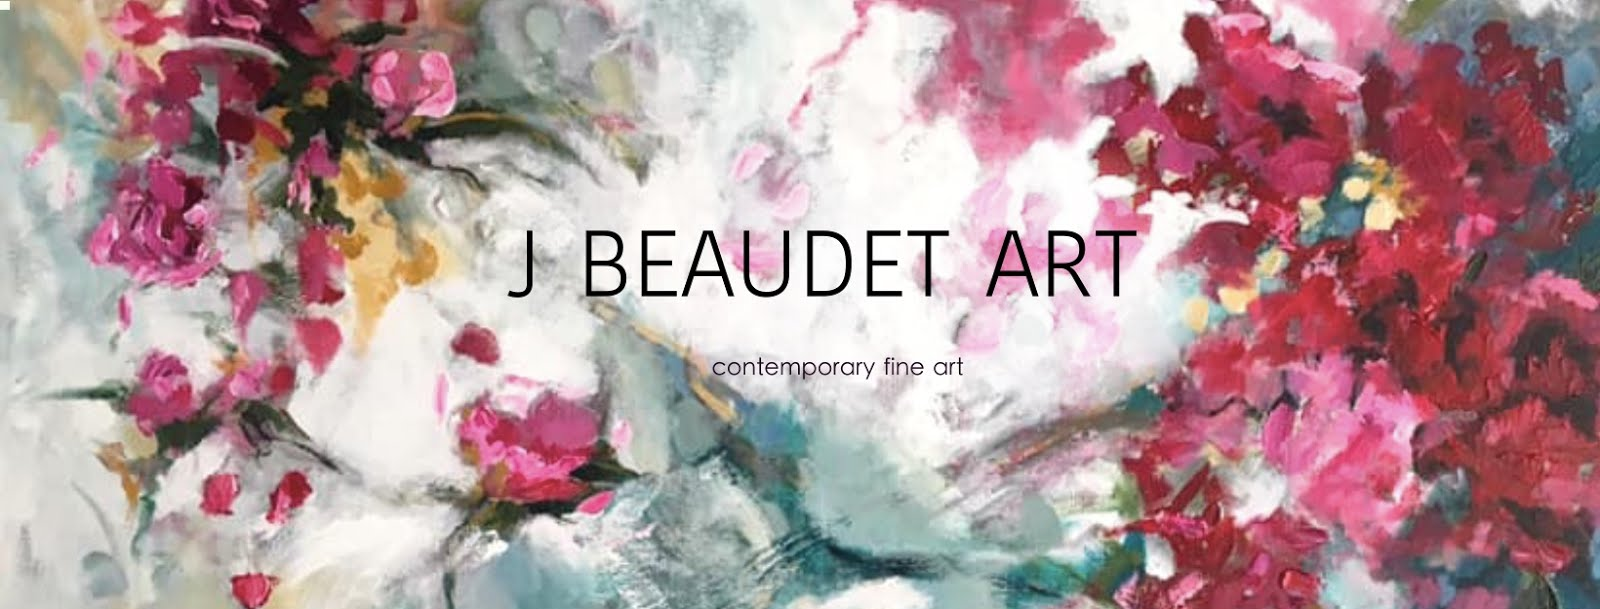 Jennifer Beaudet Artist